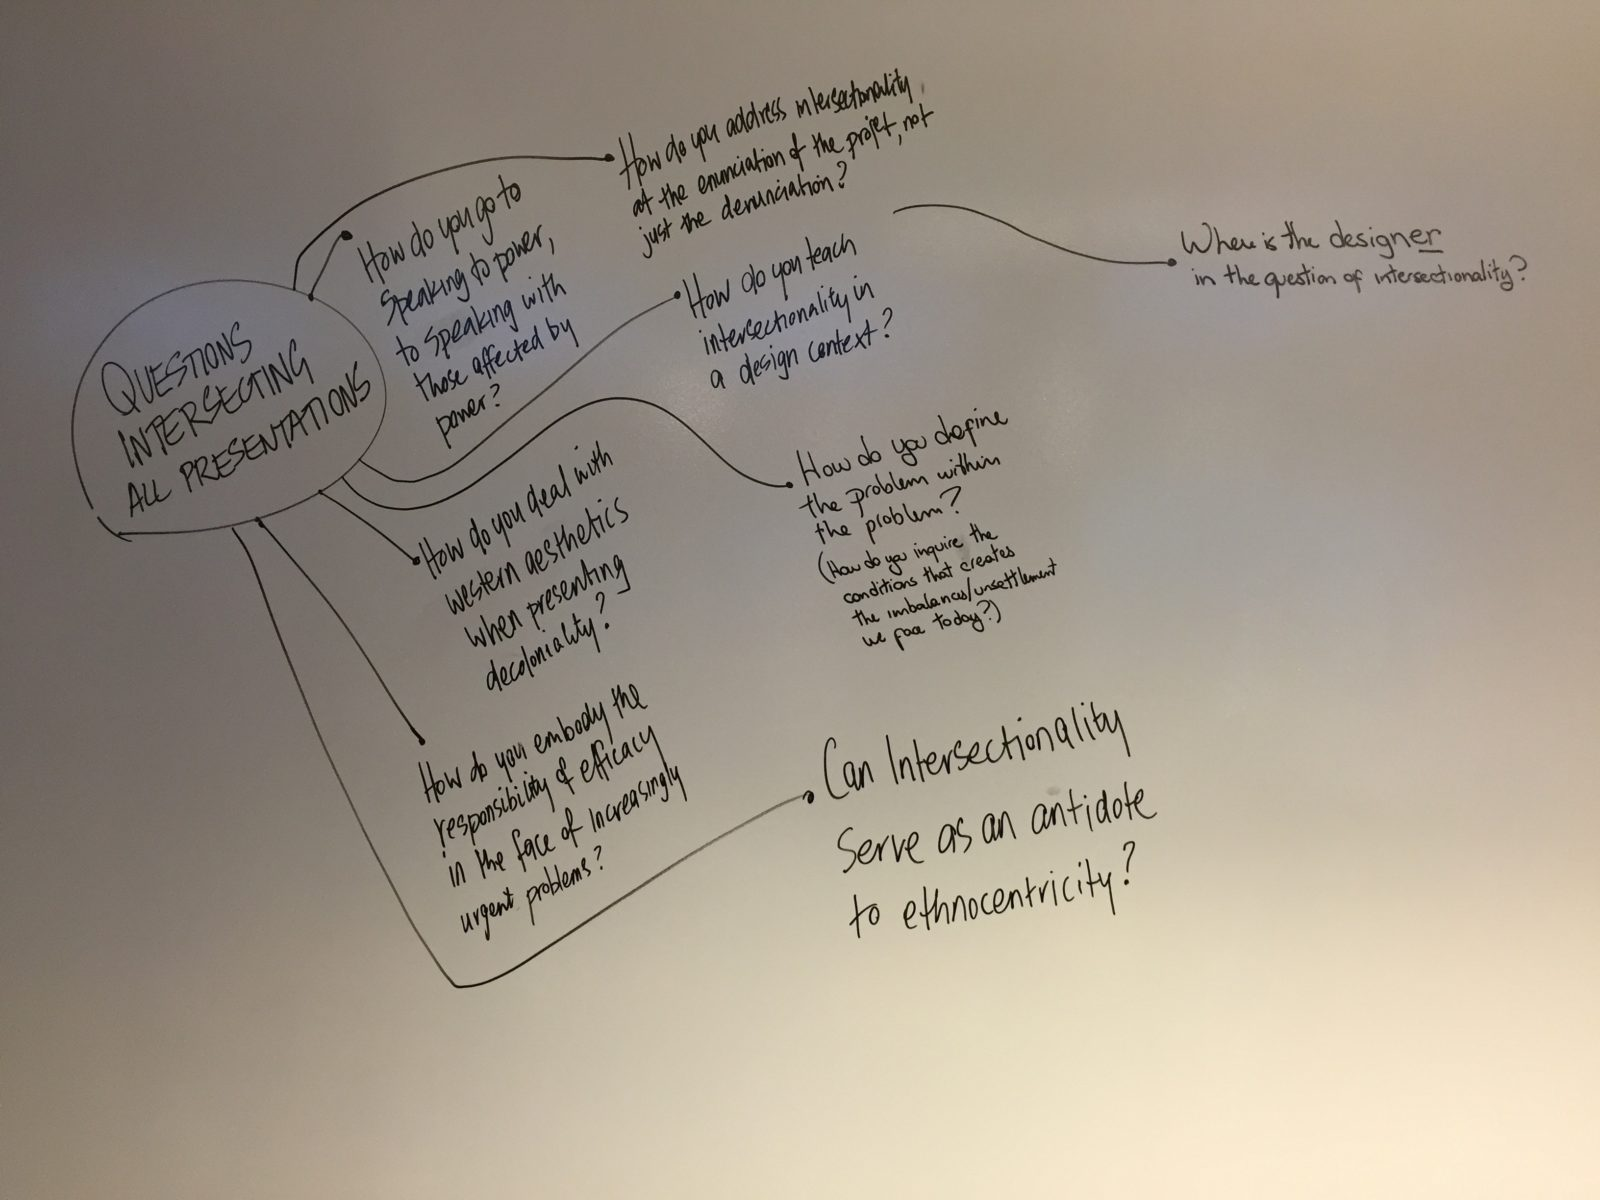 Sketched chart of Intersectionality and design